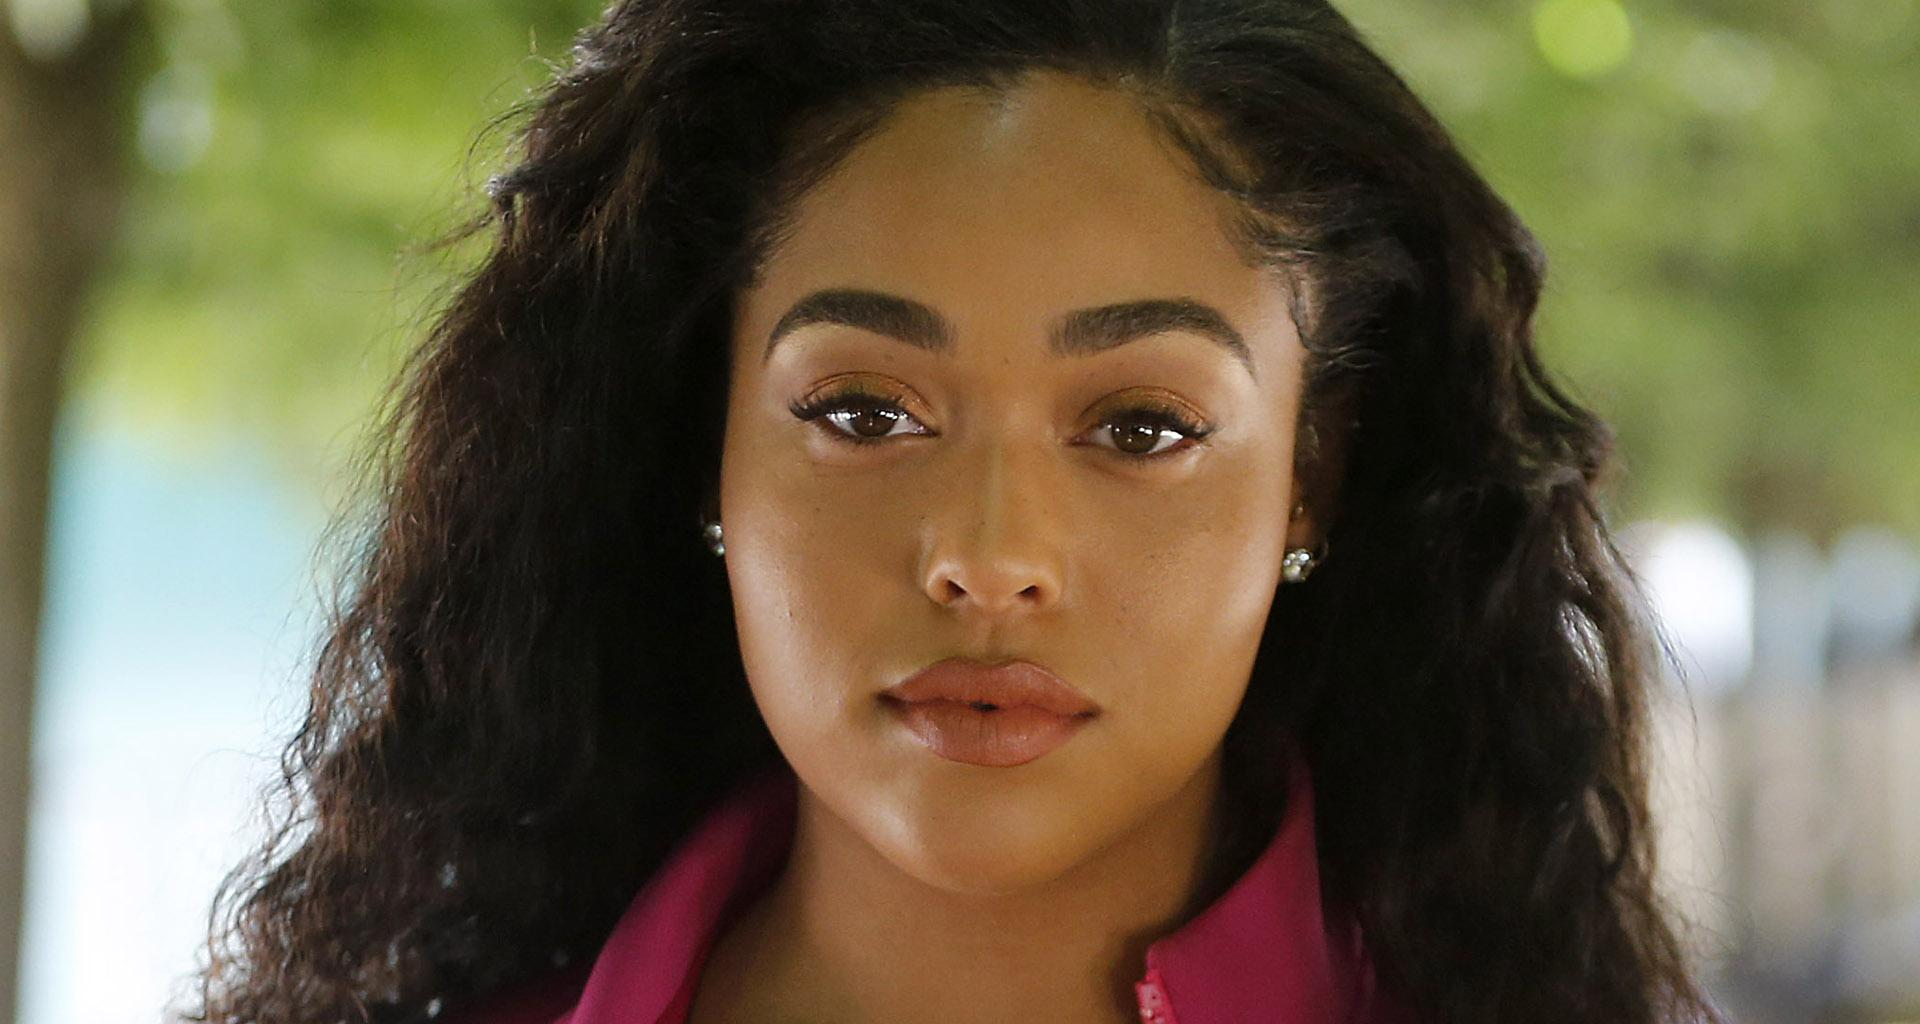 Congratulations Are In Order For Jordyn Woods Who Is Designing Her New Home - Fans Say That If She Were Still Living With Kylie, She Would Have Never Leveled Up